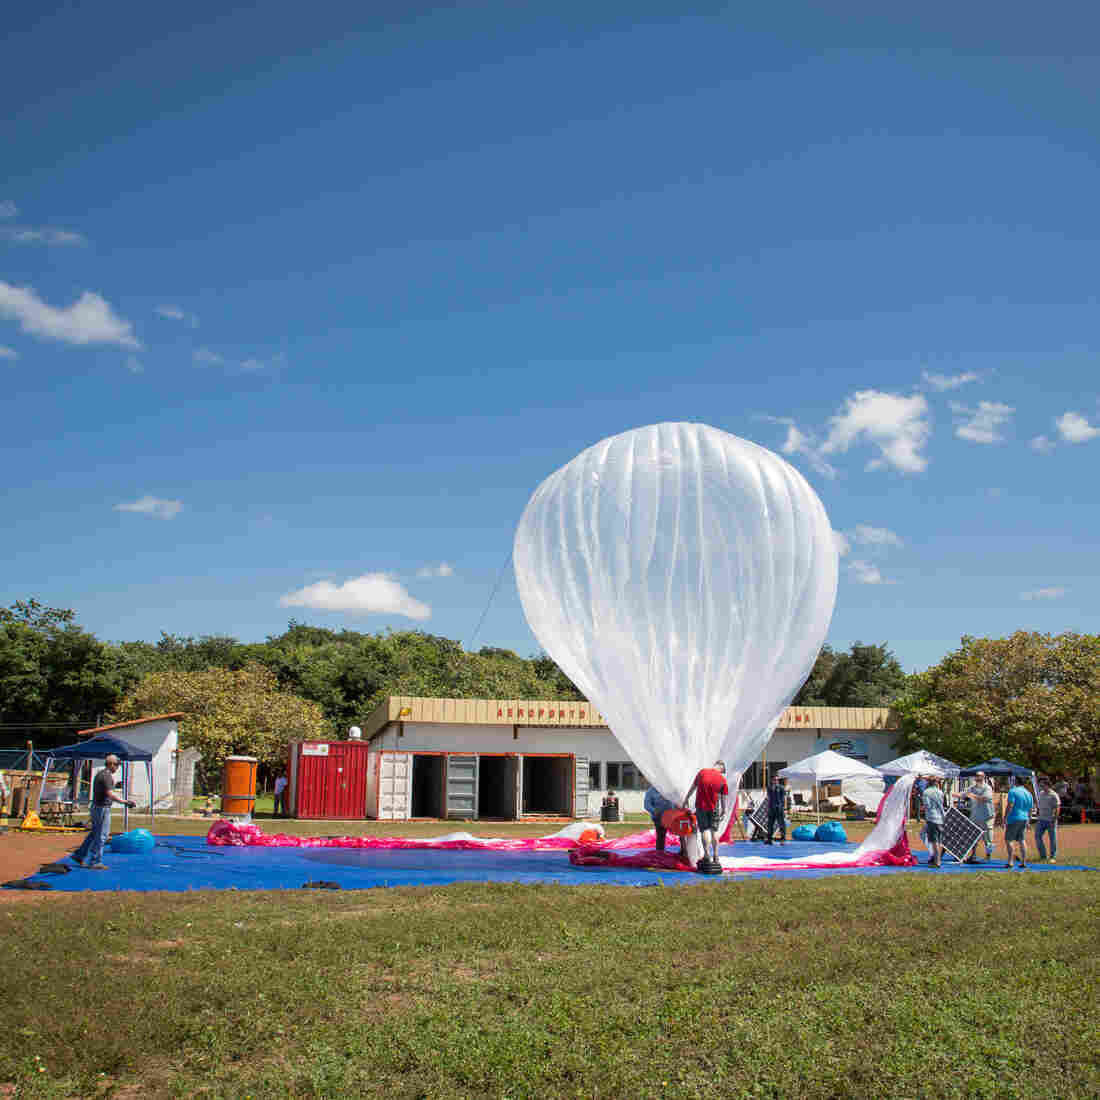 Google is doing test flights of its balloons carrying Internet routers around the world. Last June, a balloon was released at the airport in Teresina, Brazil.